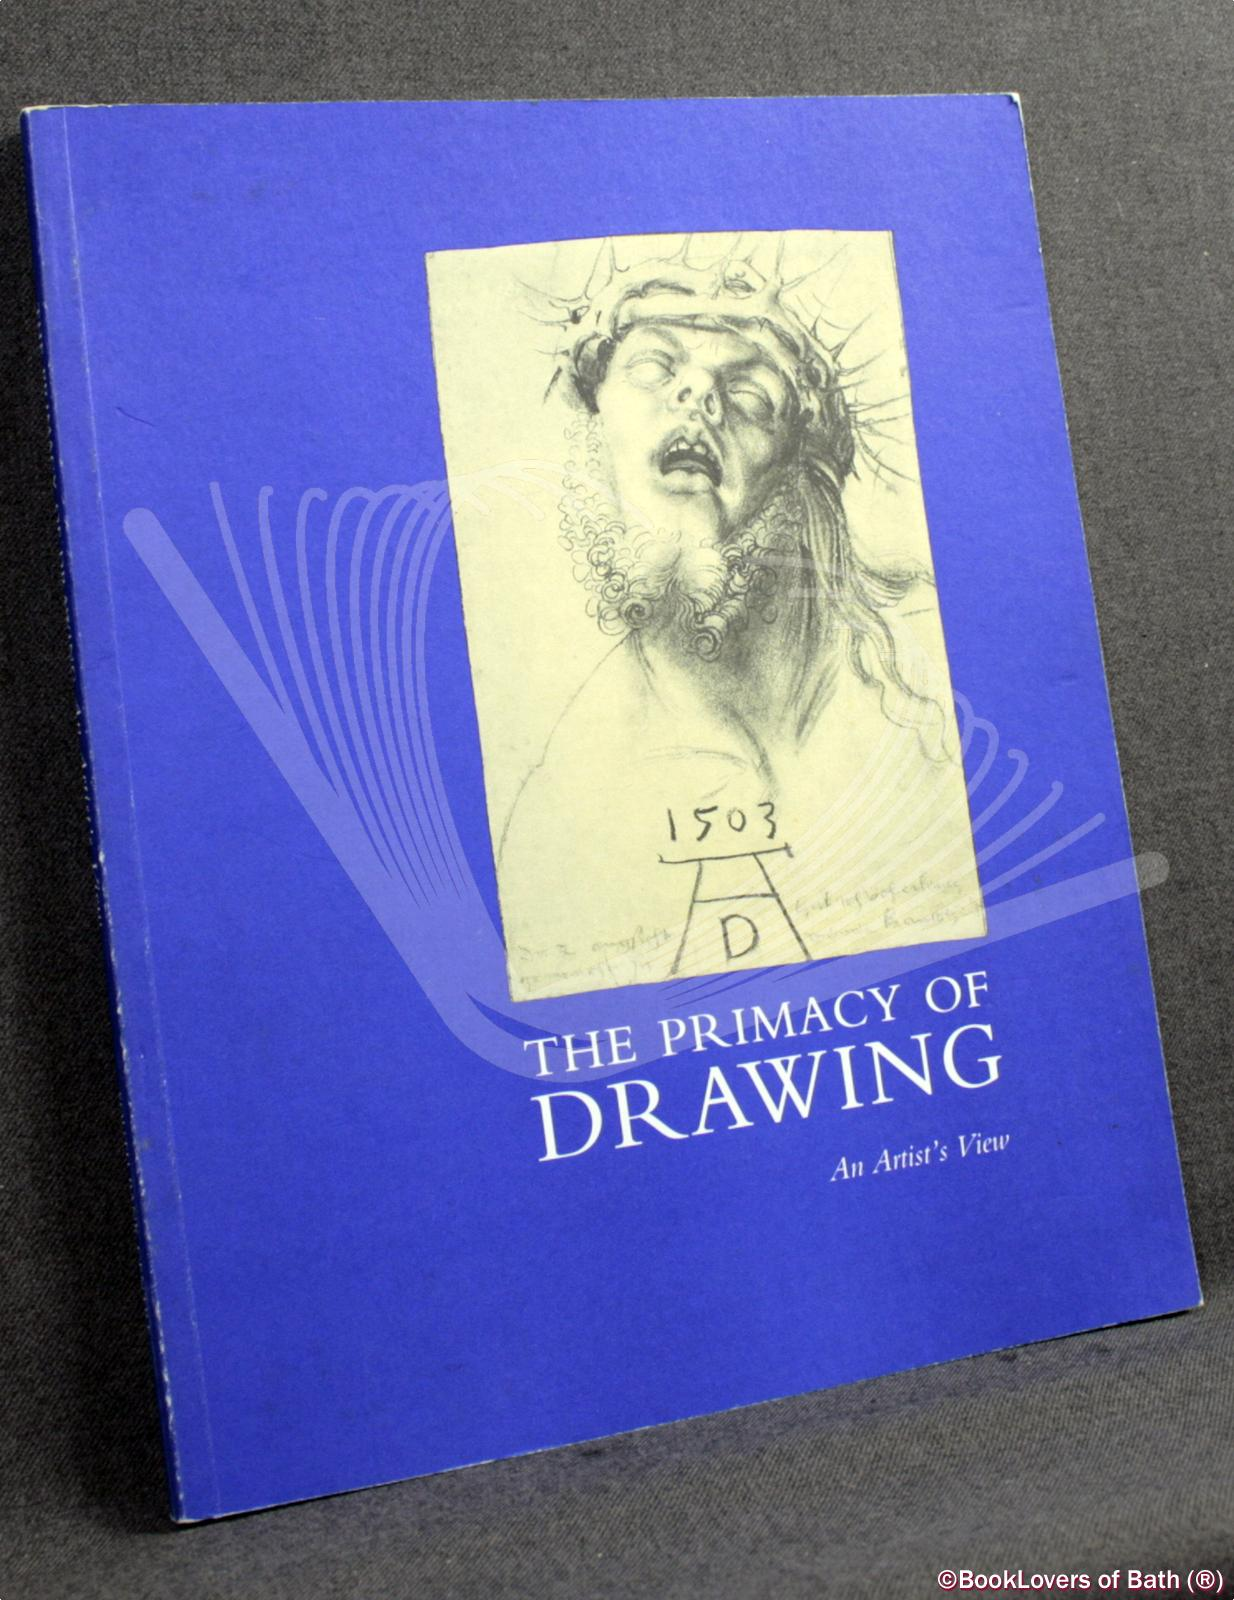 The Primacy of Drawing: An Artist's View - Deanna Petherbridge